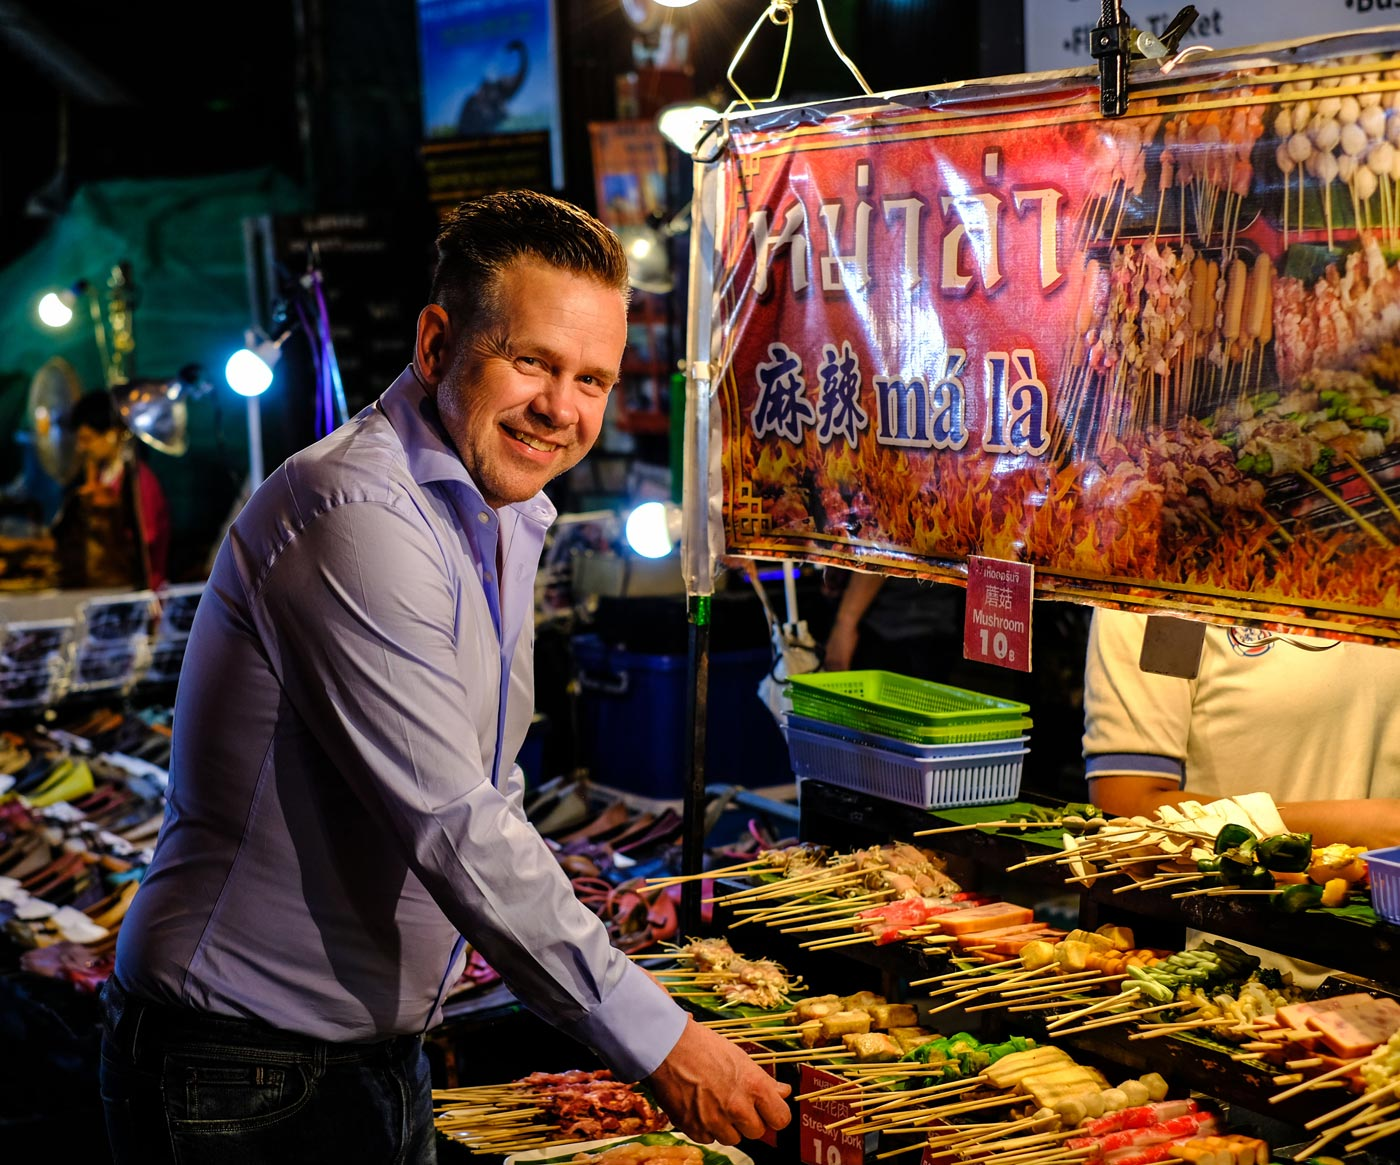 City Style and Living Magazine Edible Northern Thailand: TheRoger Van Damme Chronicles Sven Van Coillie van Damme at a night market